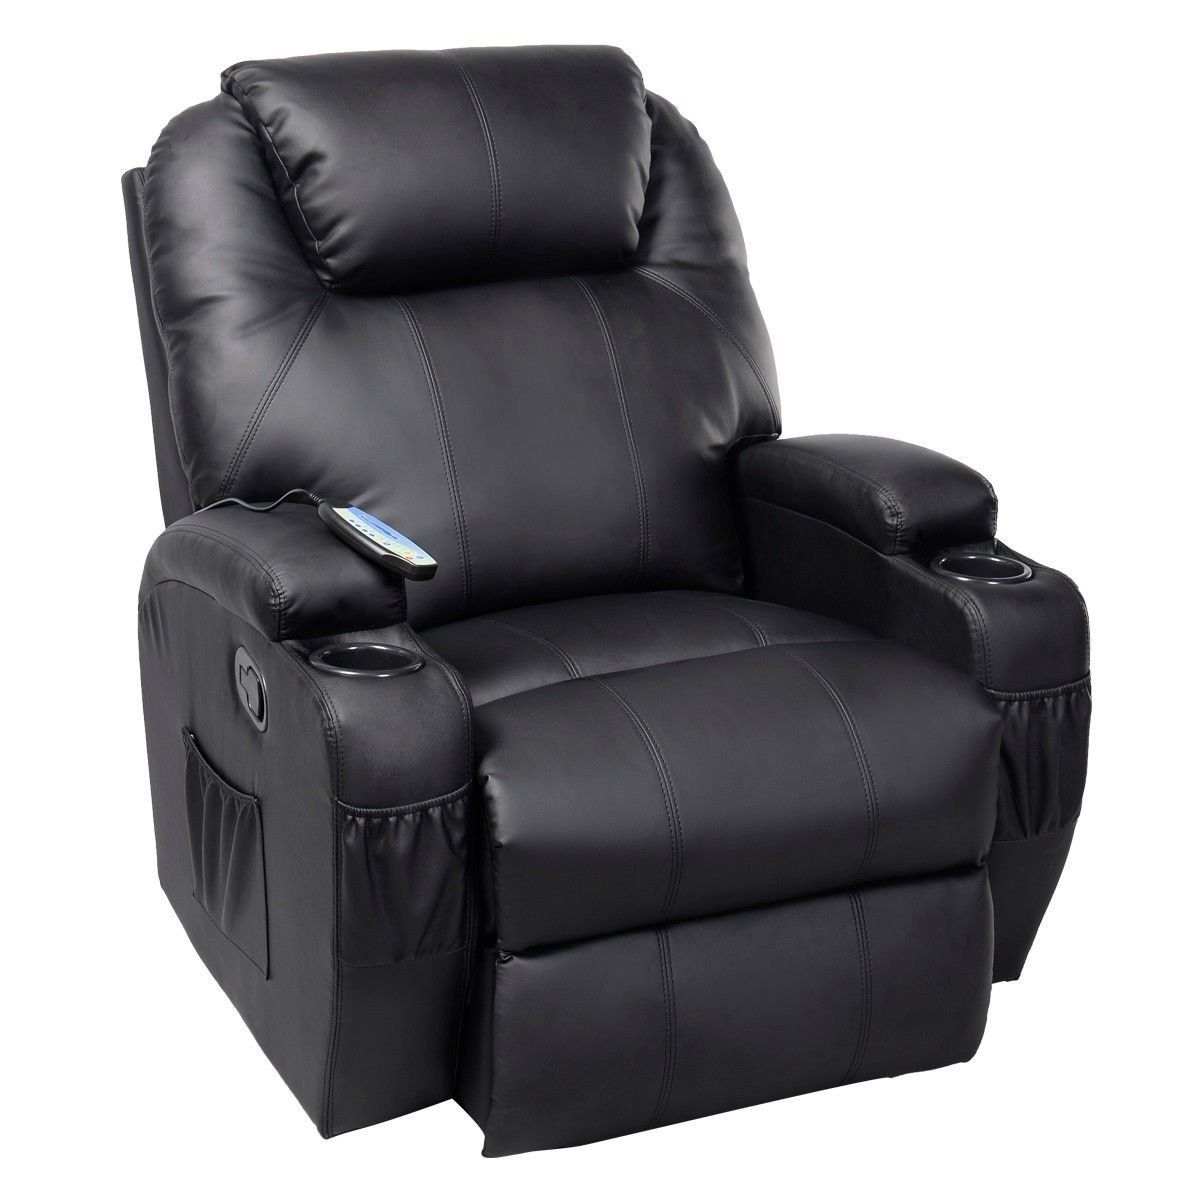 GHP Black Sturdy Ergonomic Seating Massage Recliner